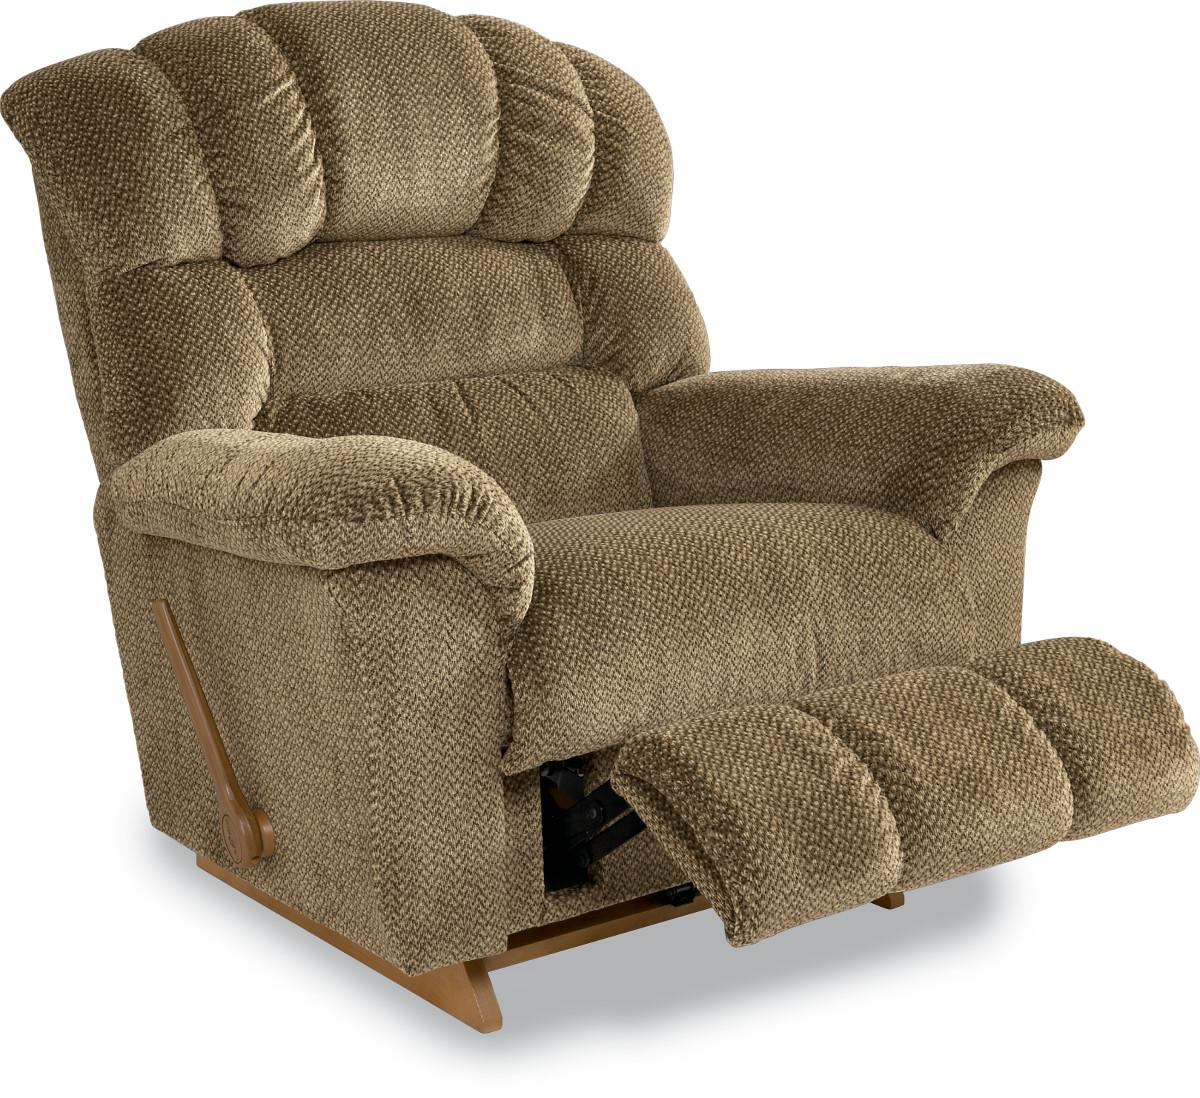 Reclining Rocking Chair Crandell Reclina Rocker Reclining Chair By La Z Boy